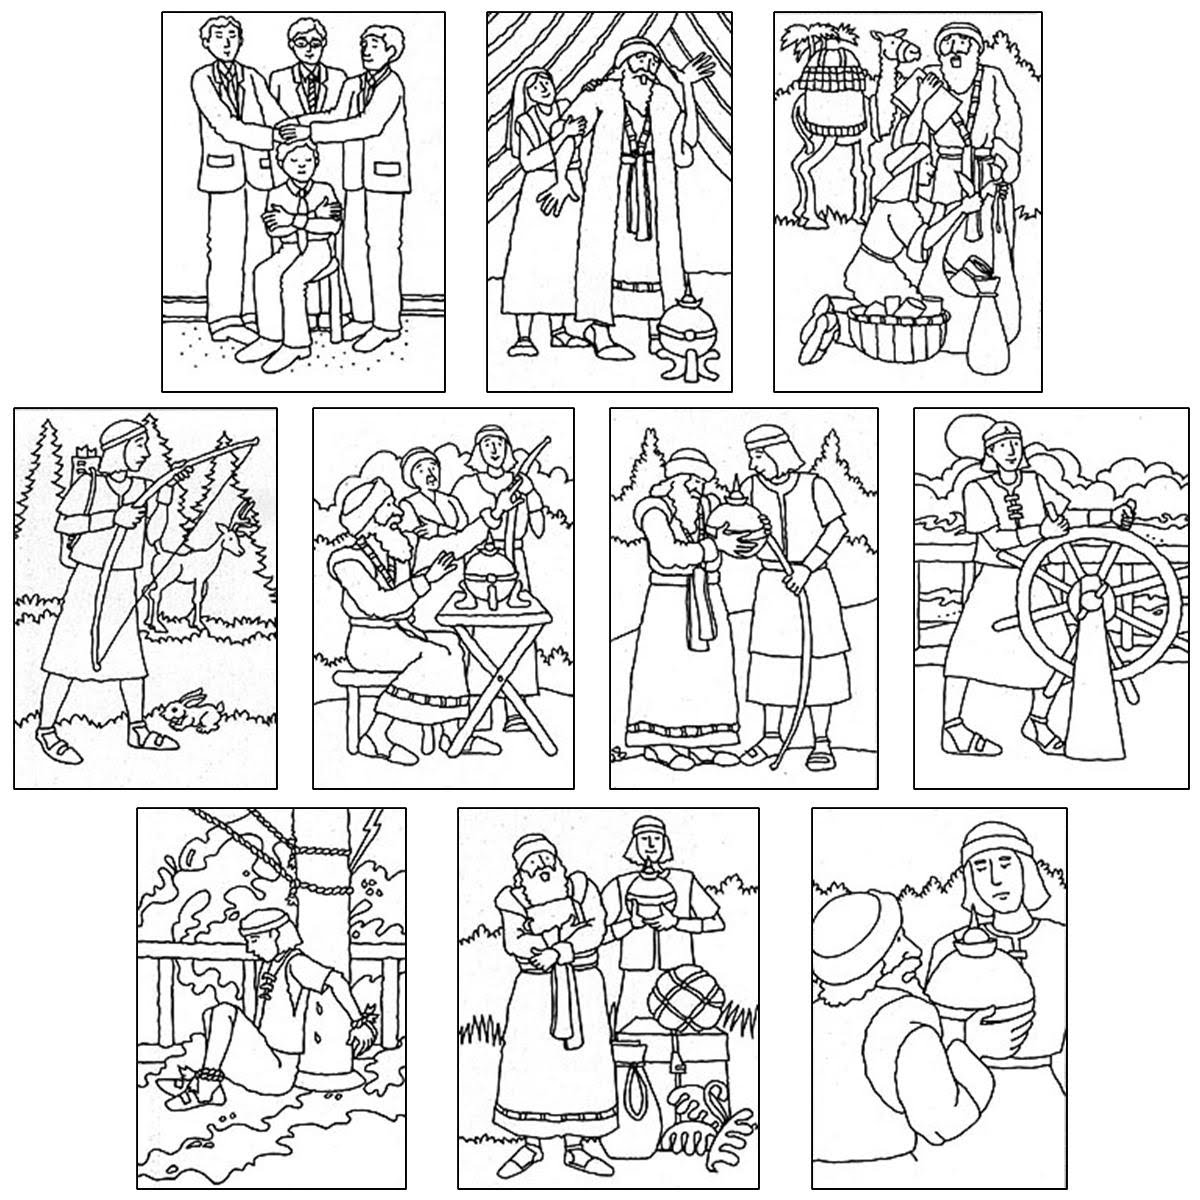 coloring pages nephi liahona - photo#25